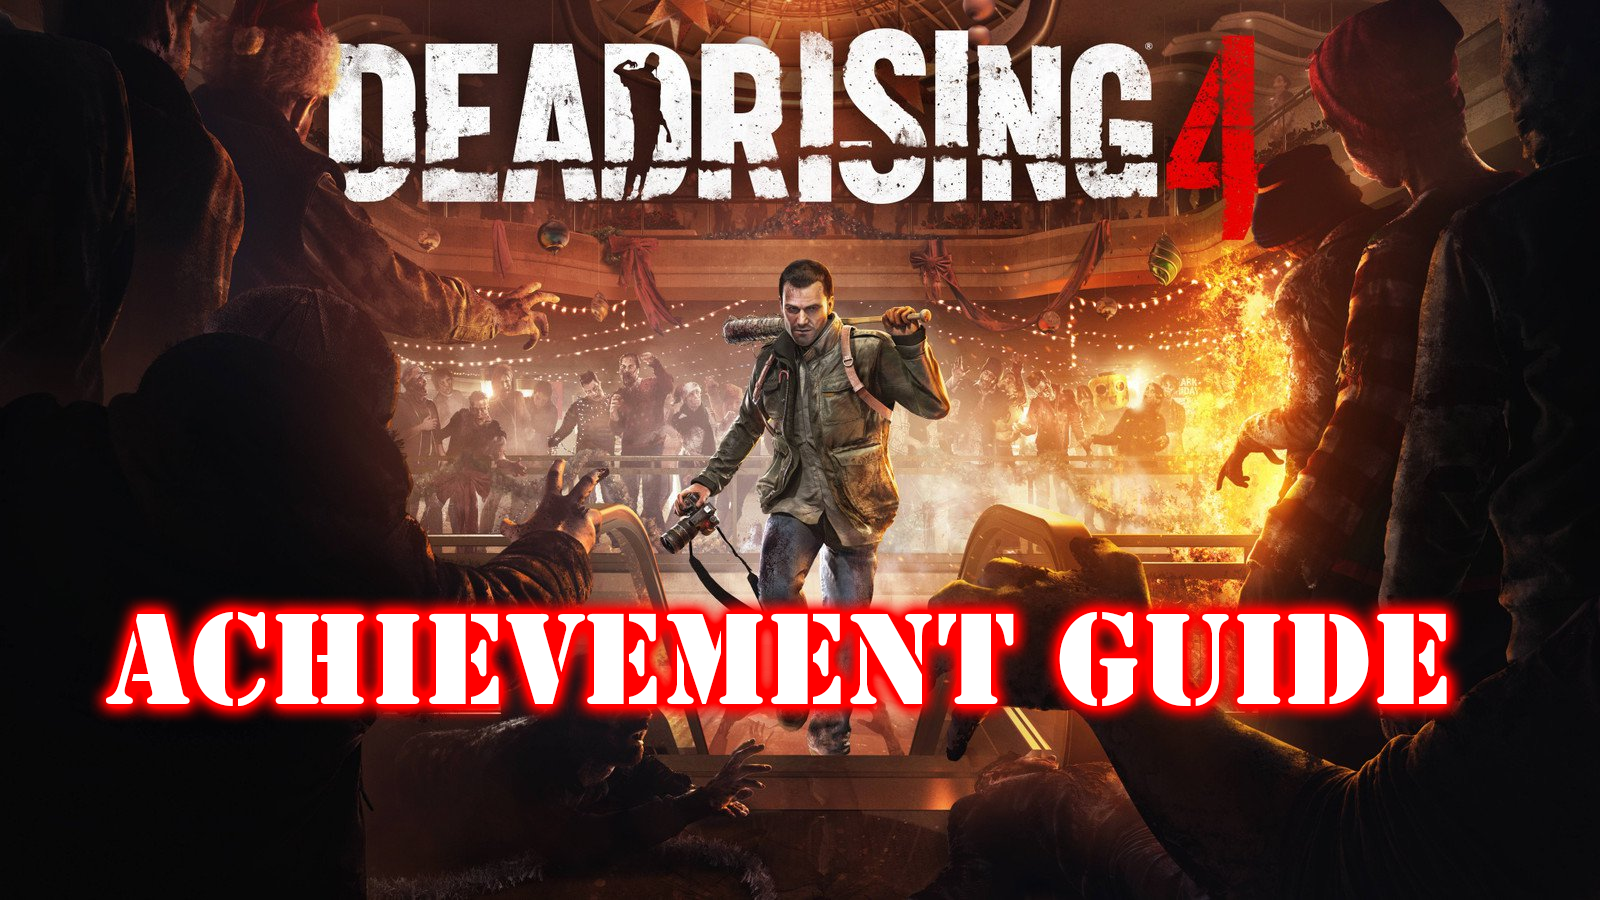 Steam community guide 100 achievement guide dlc welcome to the dead rising 4 achievement guide malvernweather Gallery